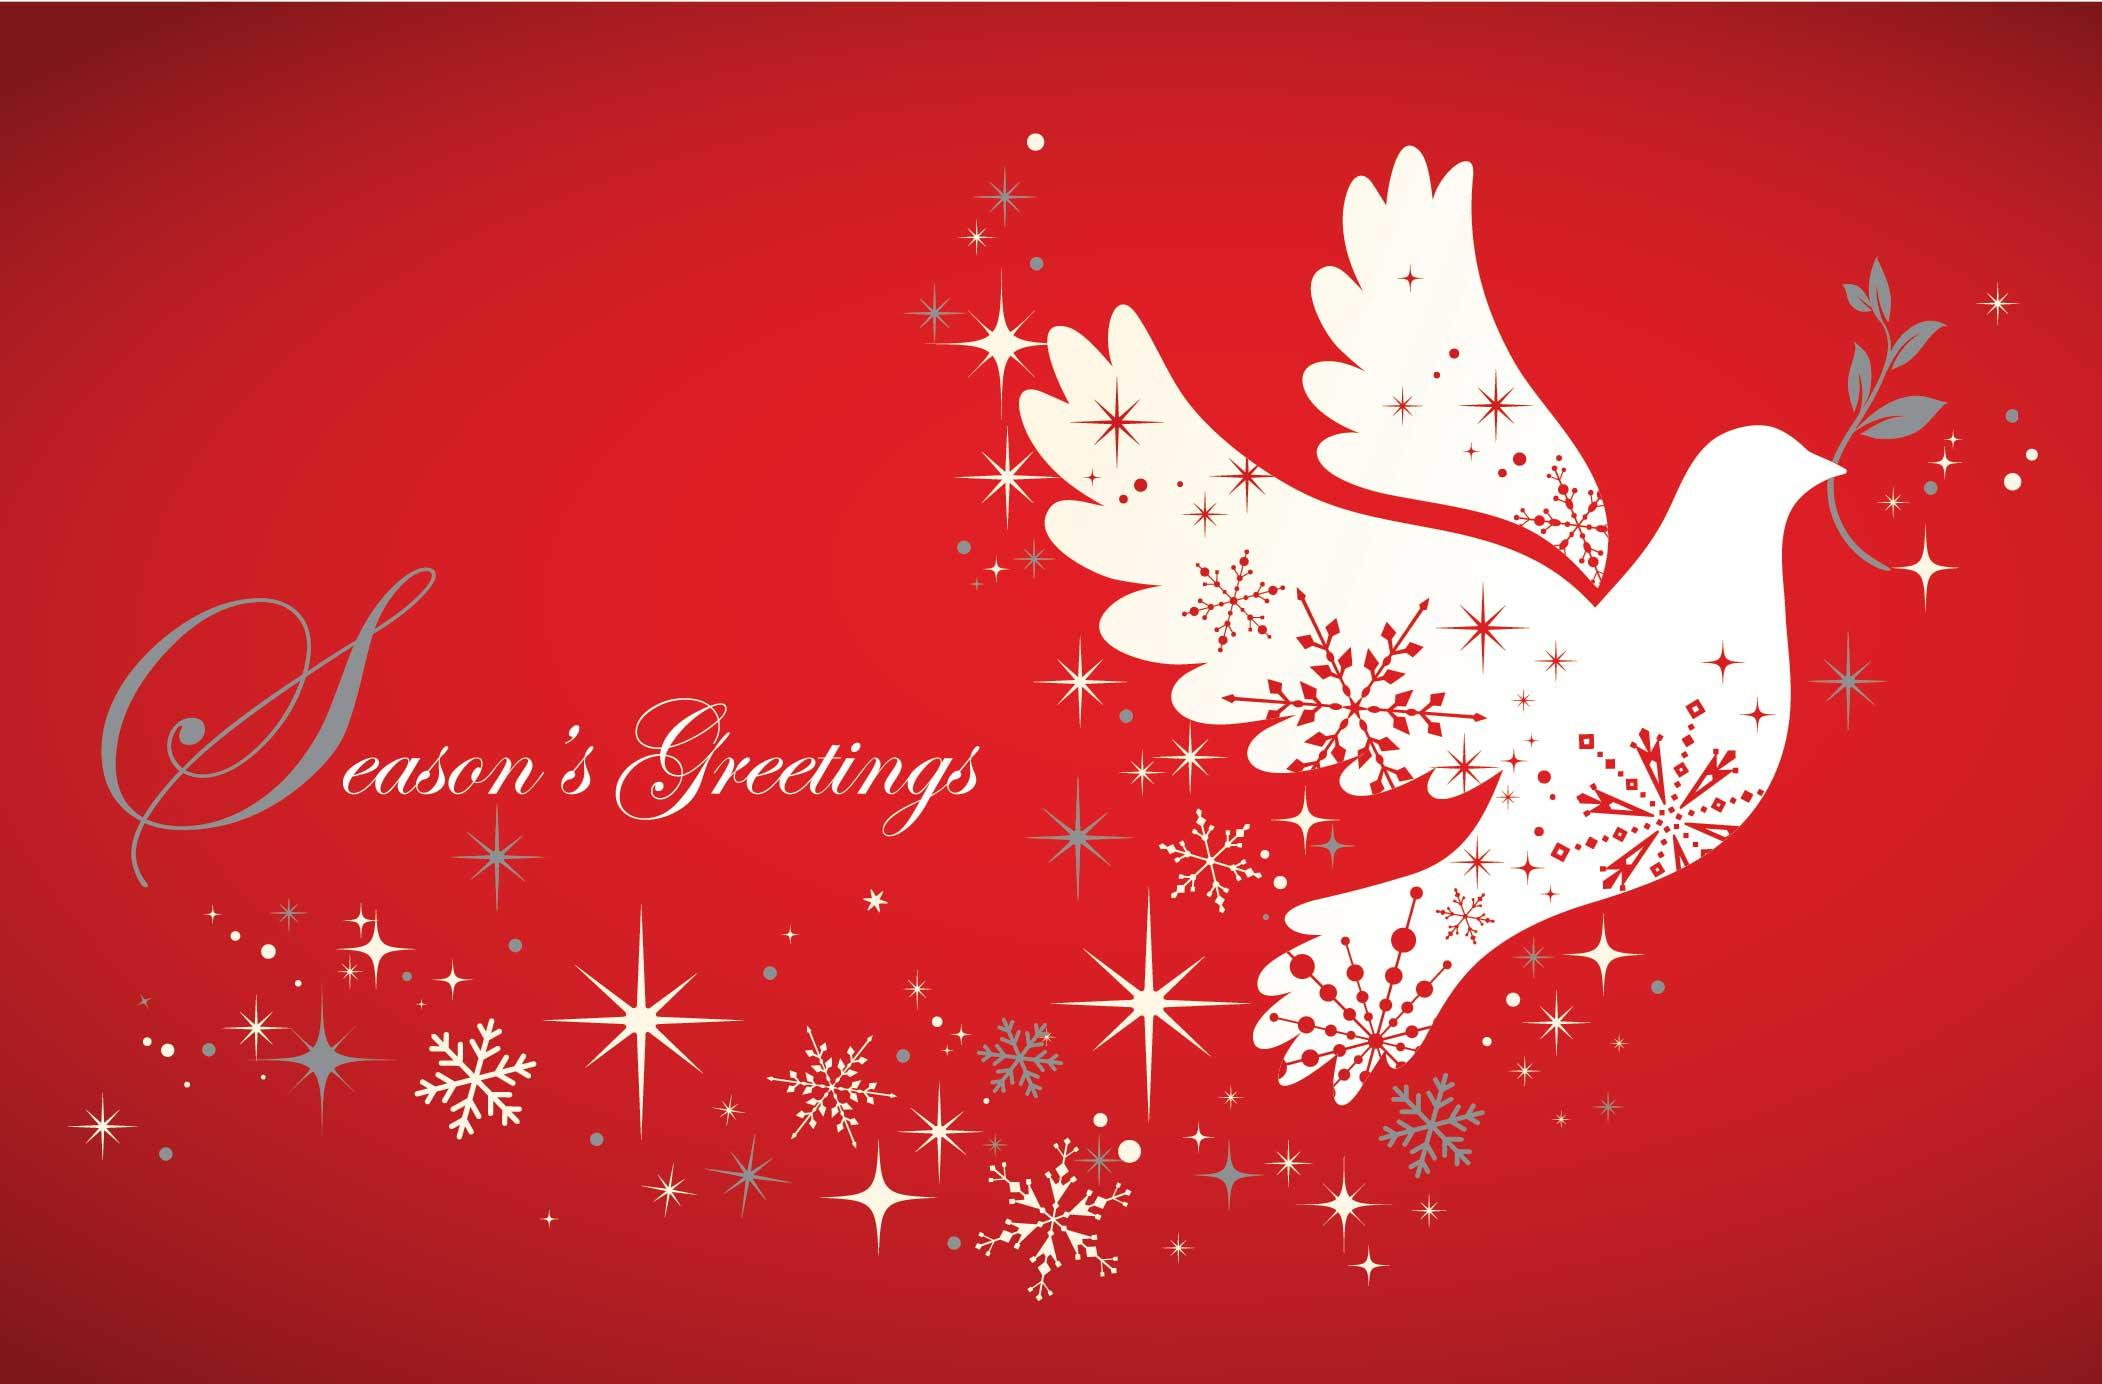 Seasons greetings wallpapers high quality download free m4hsunfo